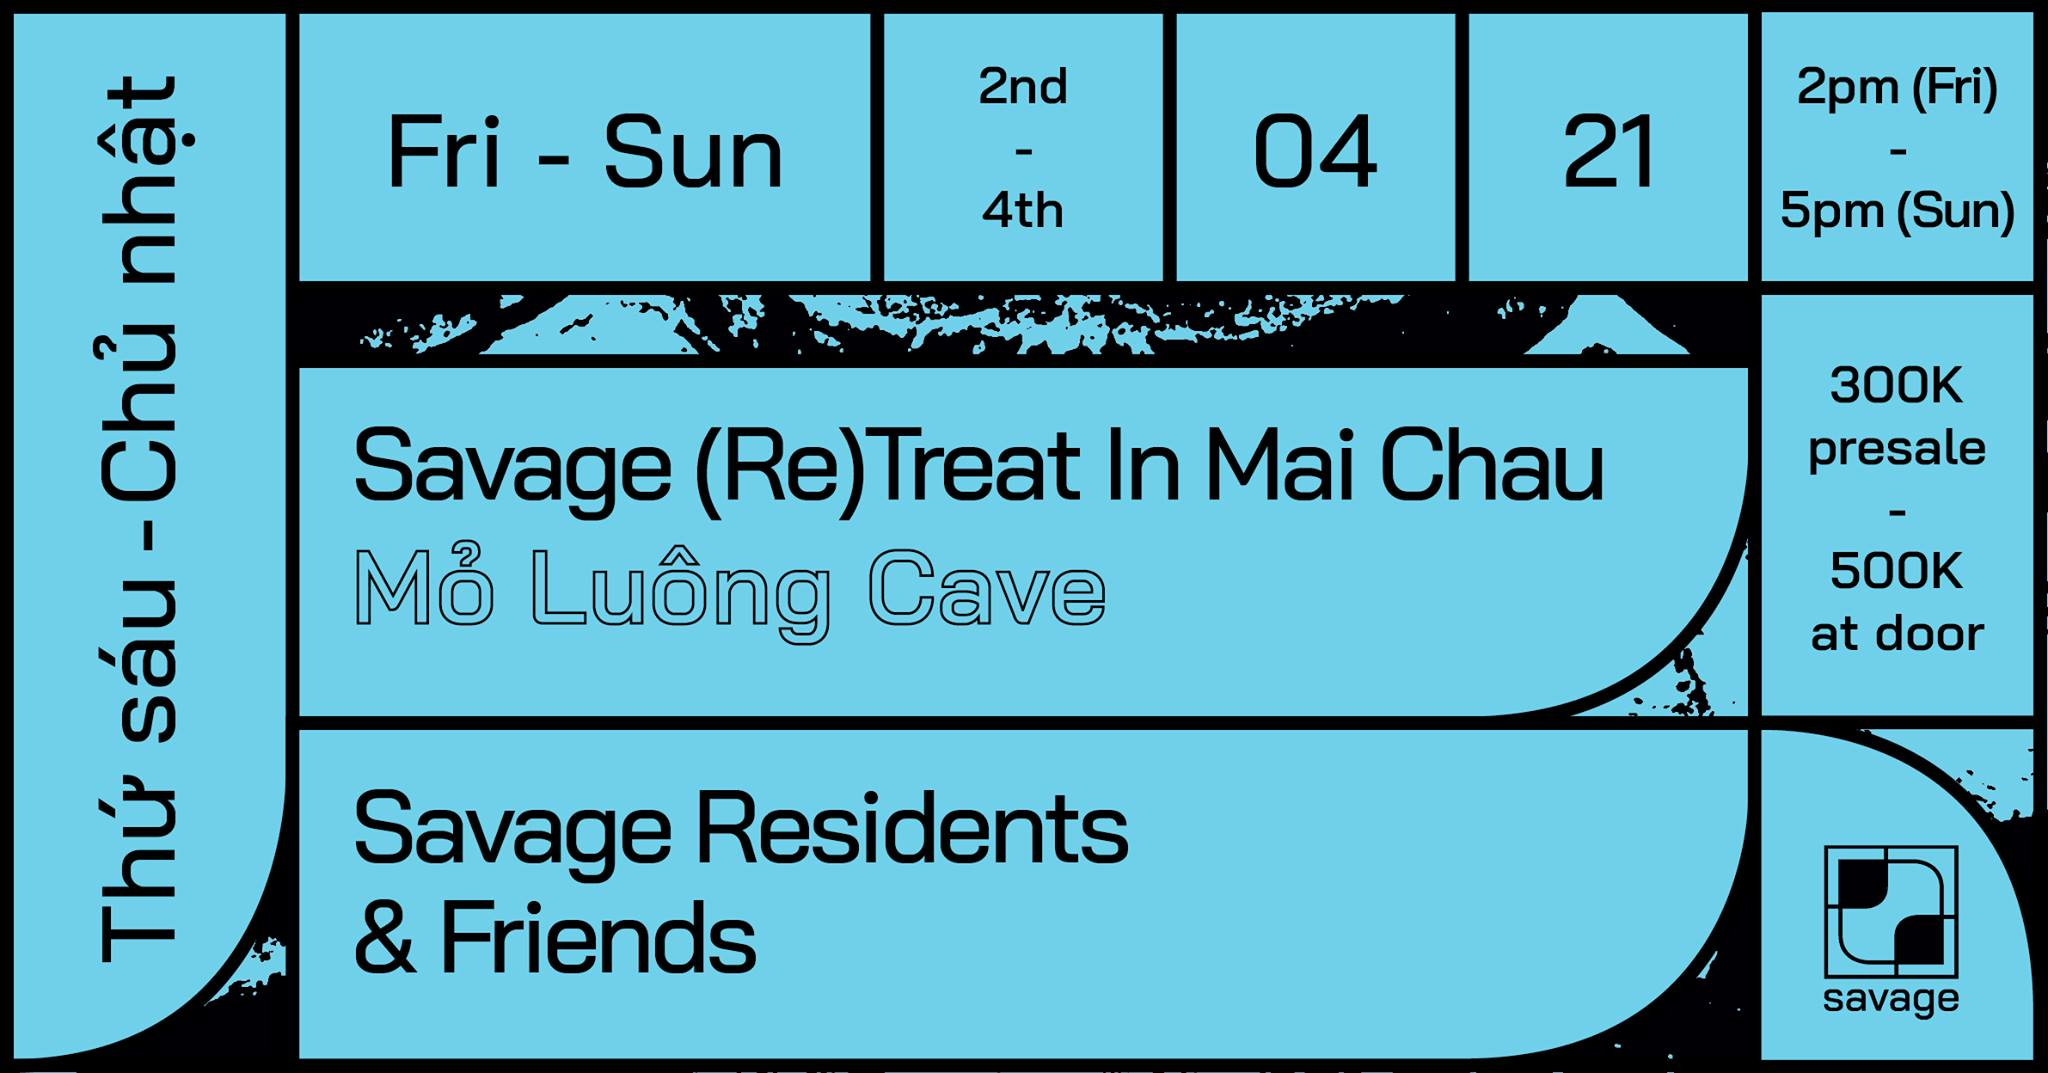 4th April | Marco Yanes & Di Linh for Savage (Re)treat